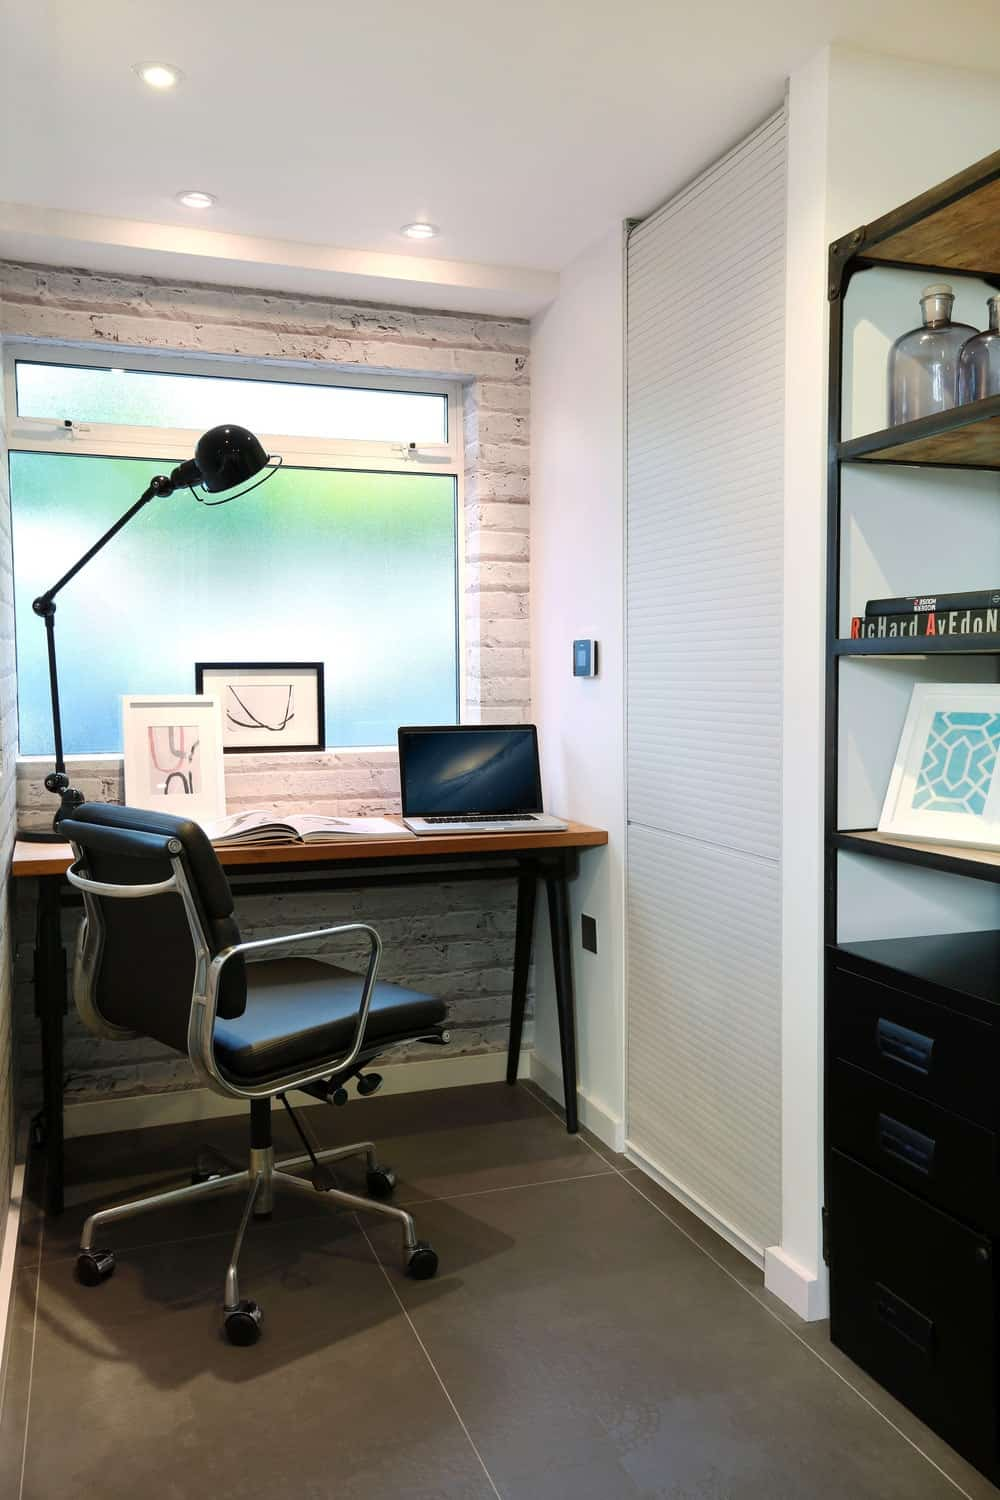 Another example of a tiny computer station in a home that works in a tiny space. Original brick wall retained but painted white. Recessed lighting nicely illuminates the space